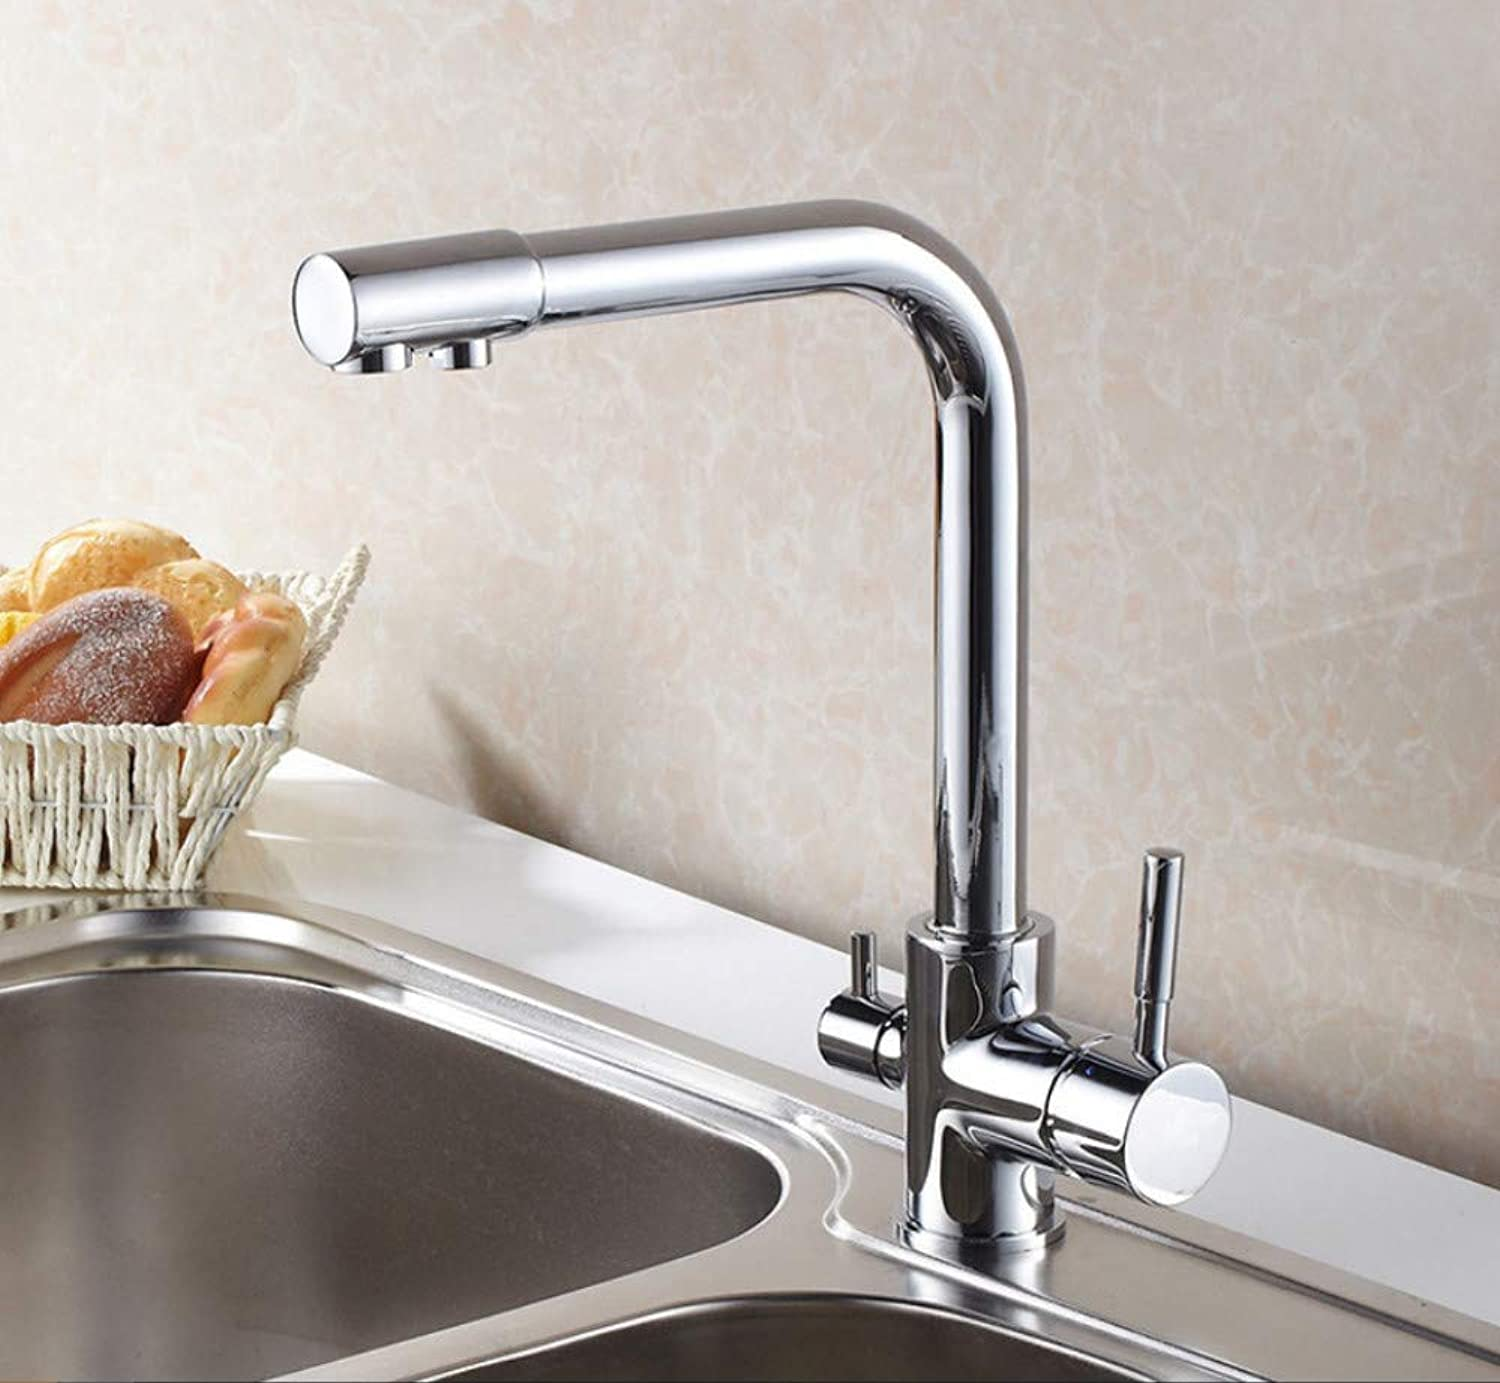 Xiehao Kitchen Faucet Hot & Cold Water Purifier Faucet Single Hole 360 Degree redating Double Handle Double Way Bathroom Faucets Taps